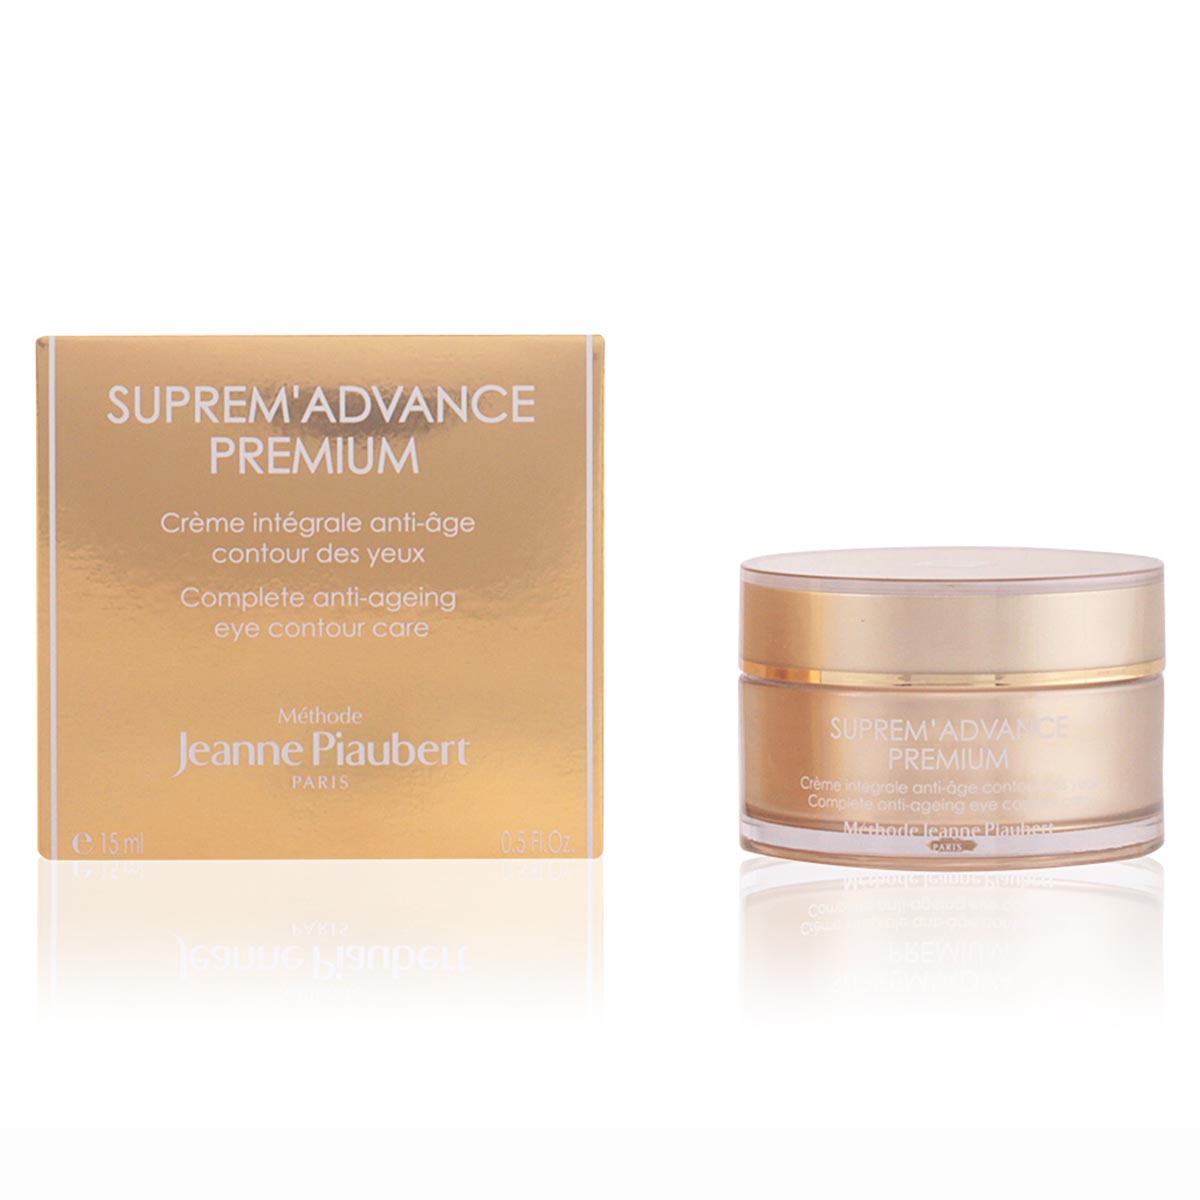 Jeanne piaubert suprem advance premium anti ageing eye contour care 15ml